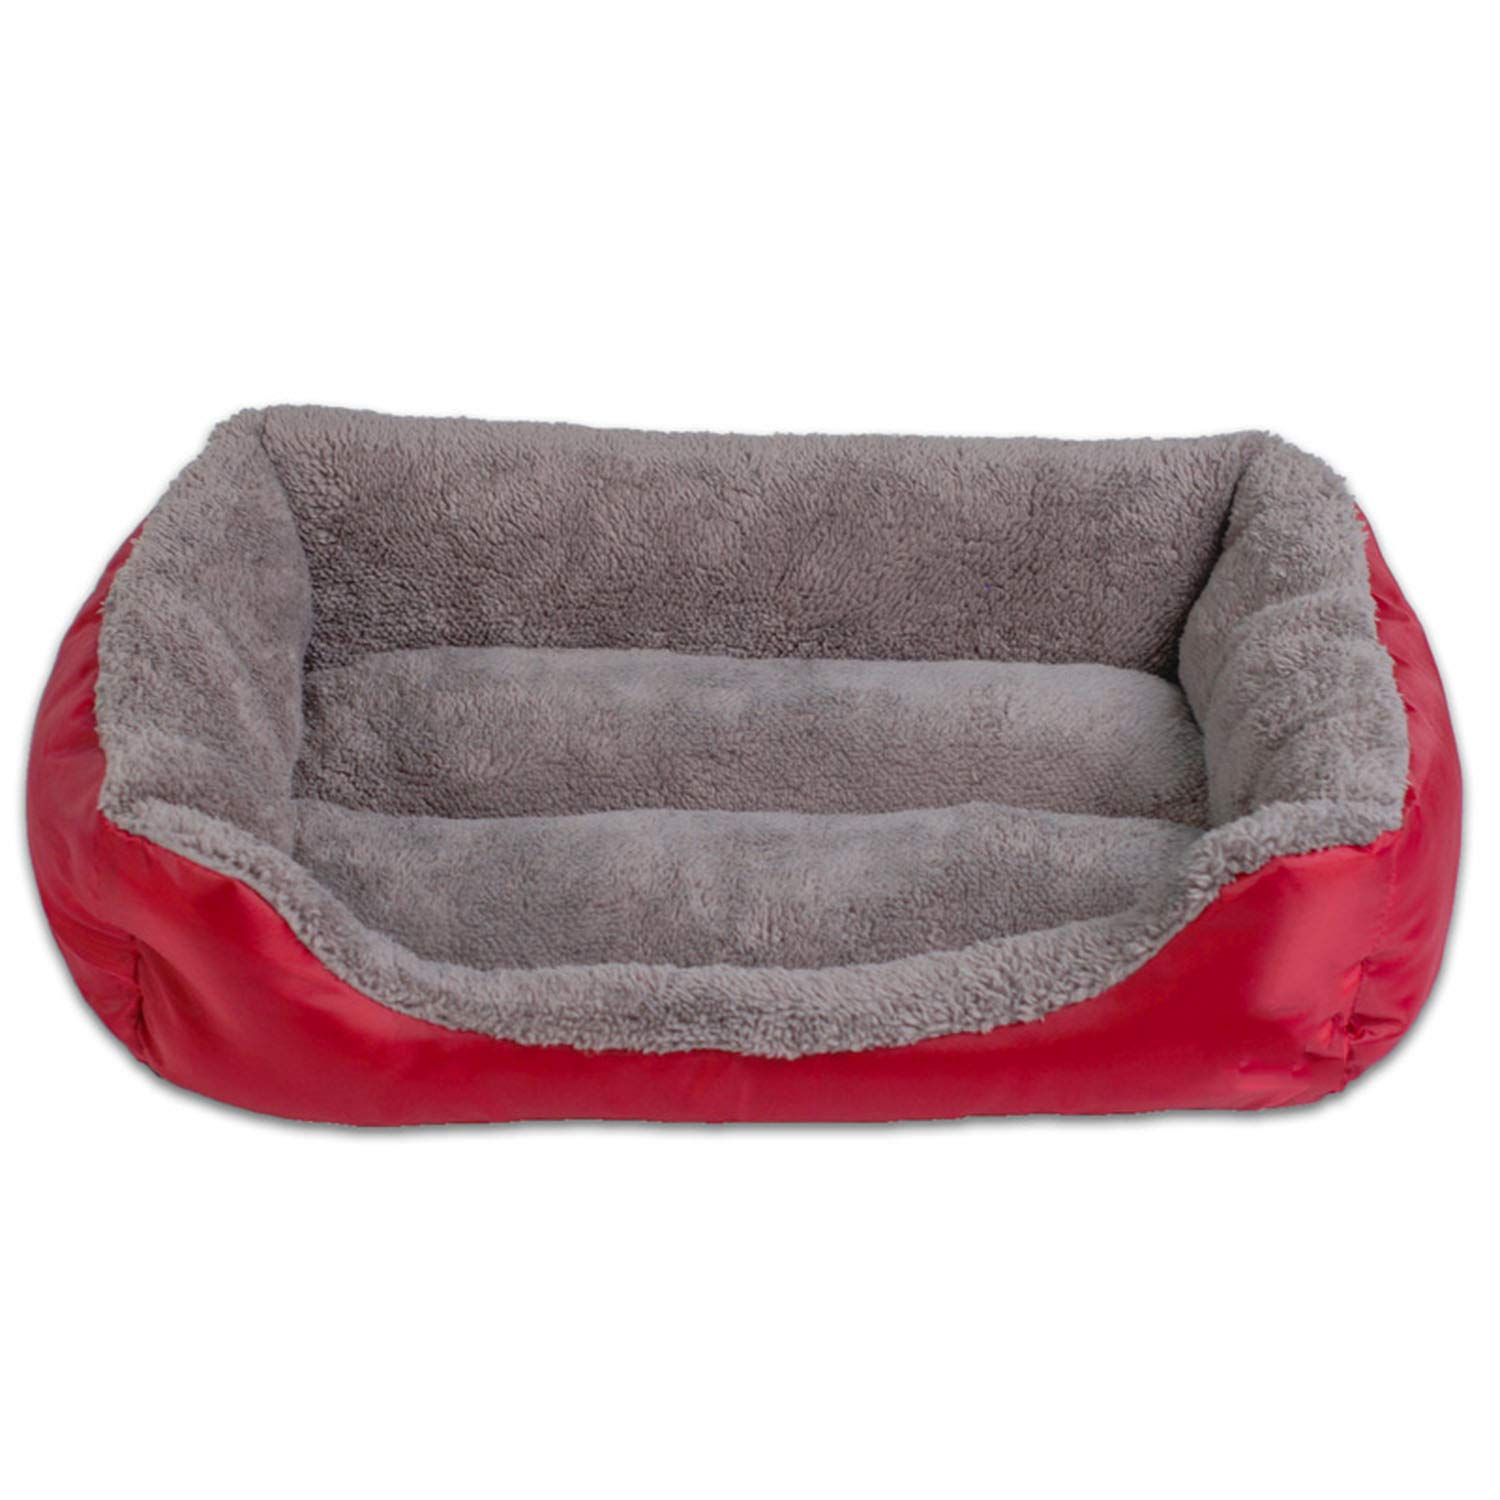 Amazon.com : Pet Sofa Dog Beds Waterproof Bottom Soft Fleece ...